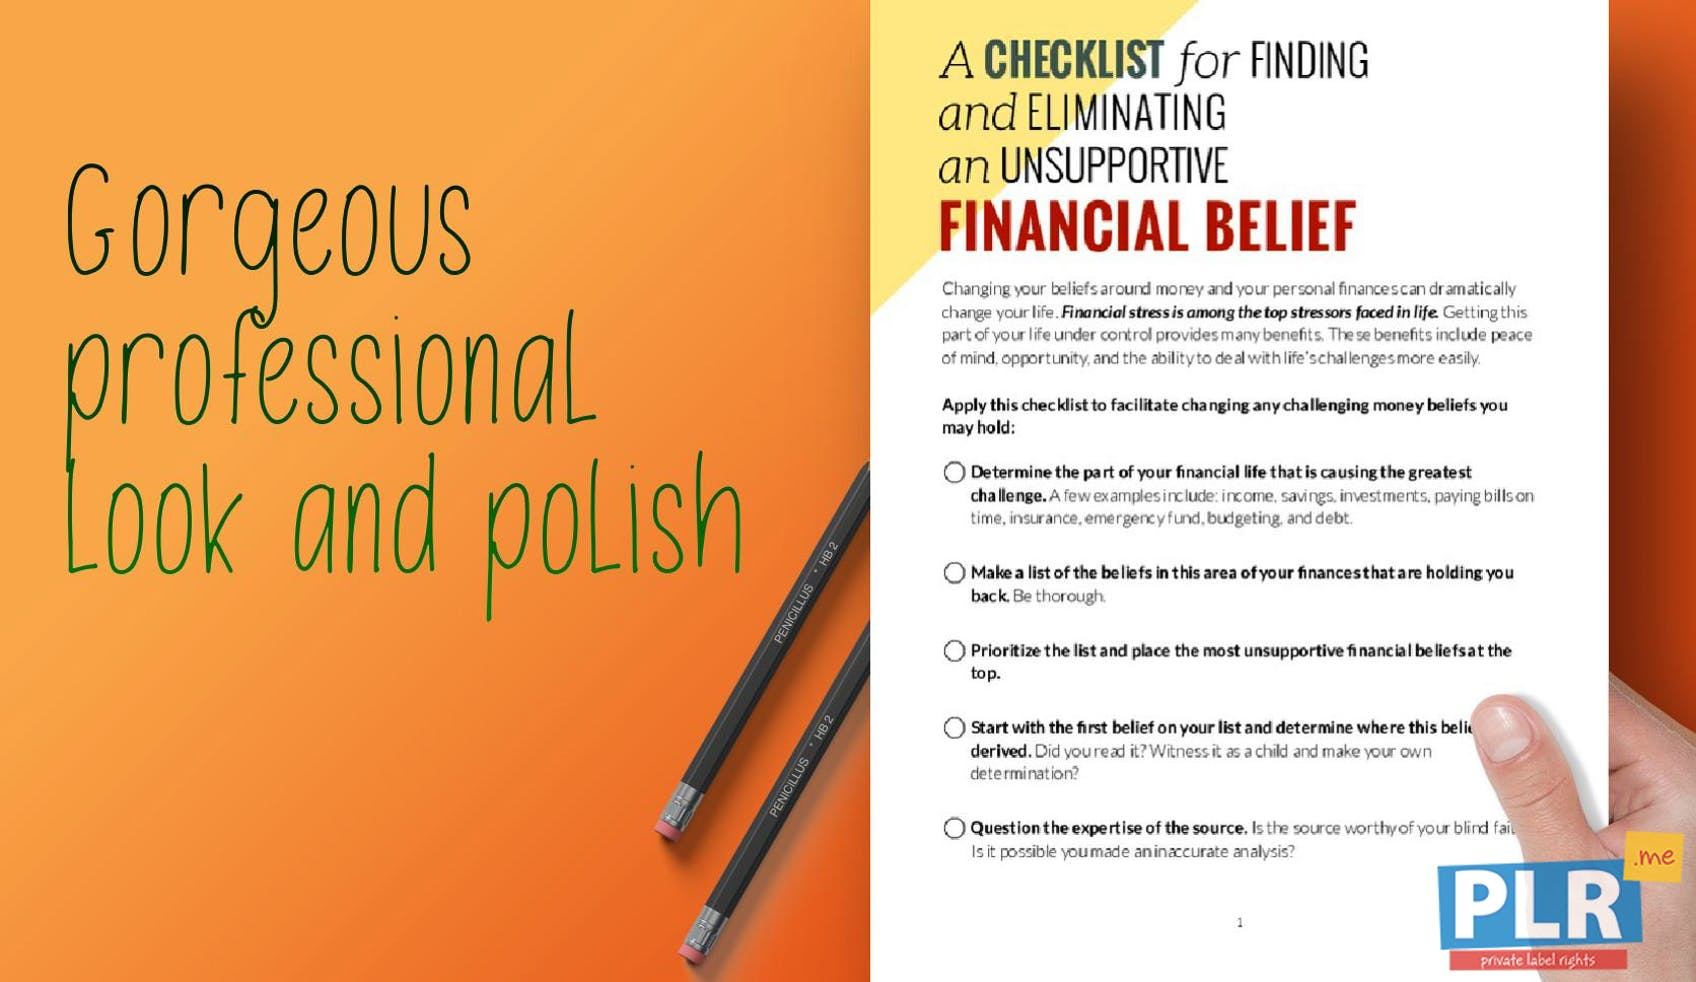 A Checklist For Finding And Eliminating An Unsupportive Financial Belief